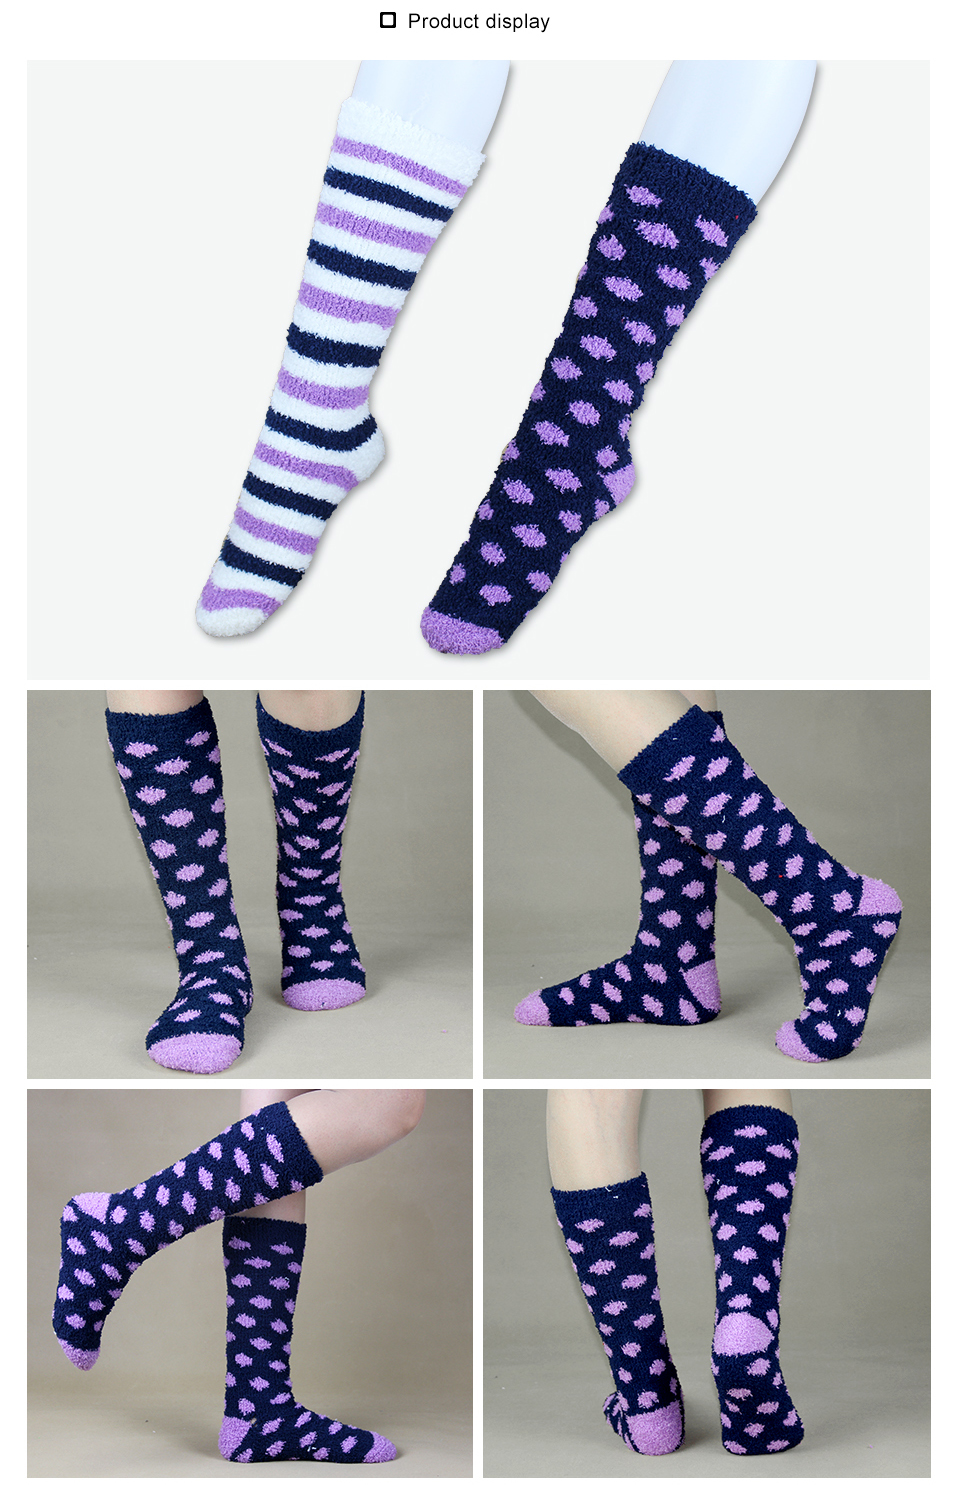 High Indoor Women Socks Soft Warm Spring Winter Brand Thick Striped Compression Hosiery Long Ladies Cosy Home Slipper Socks 2PK 6